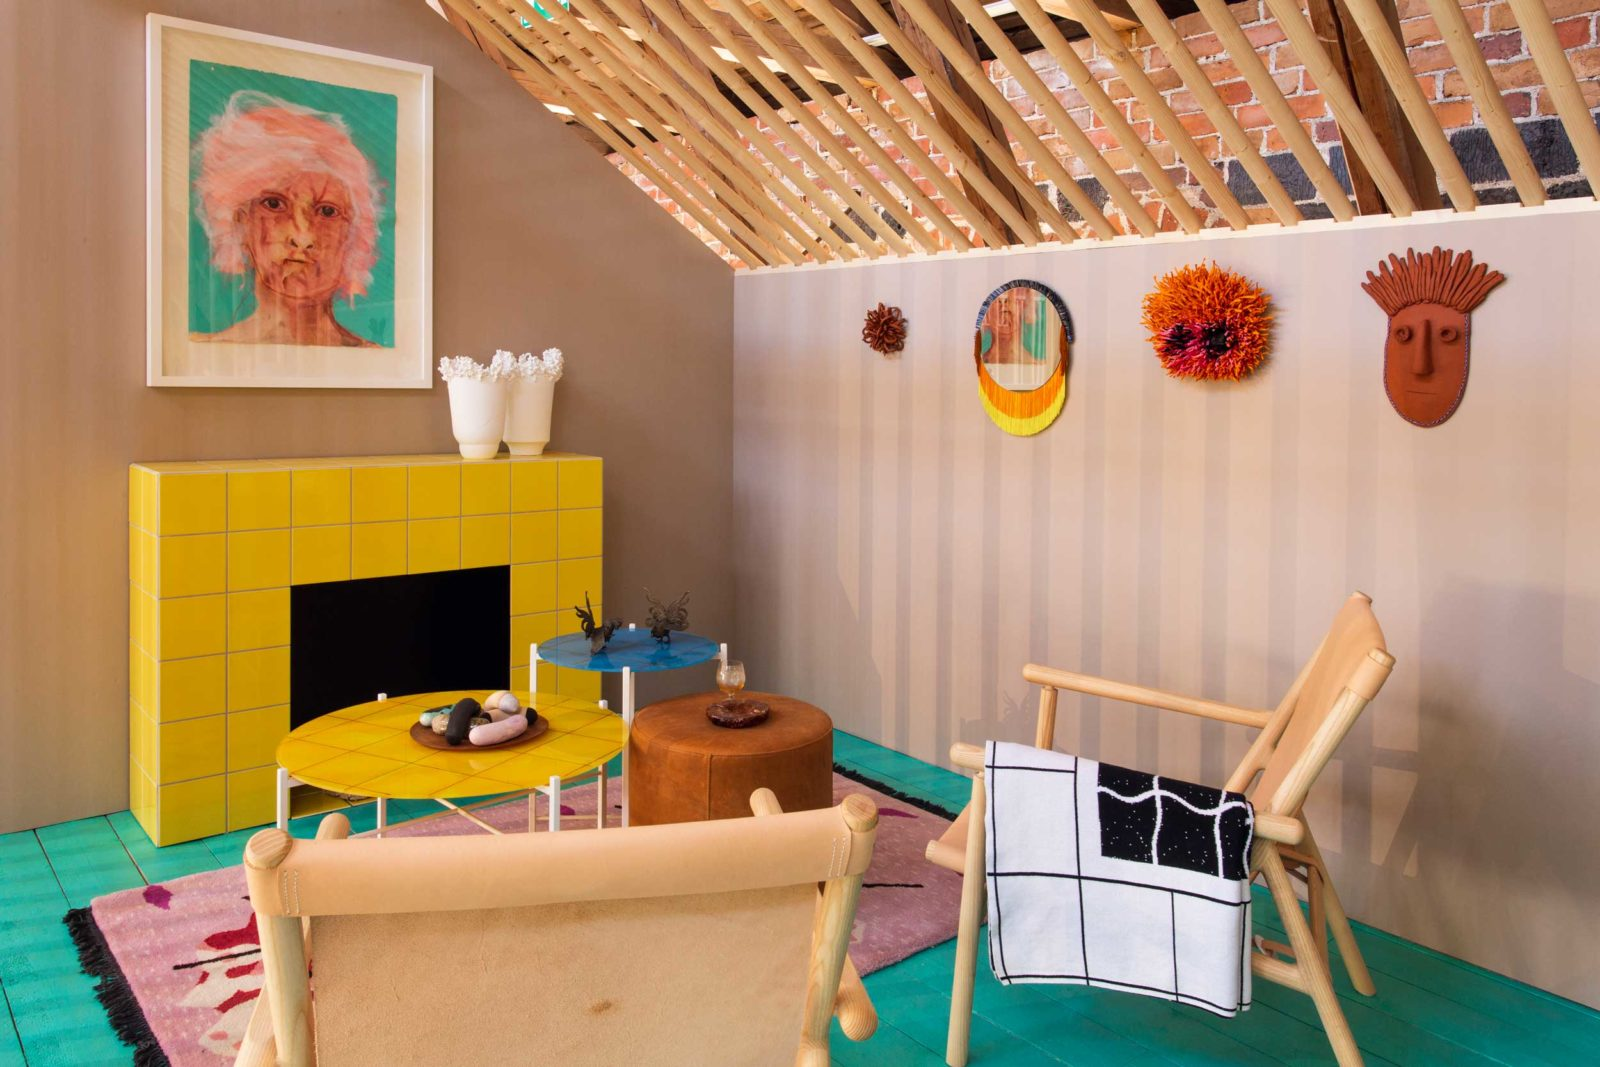 Fiskars Summer House Exhibition, which presented nine rooms inspired the summer life of artists. Kuitunen designed a fireplace room with Hakola inspired by artist Rauha Mäkilä.